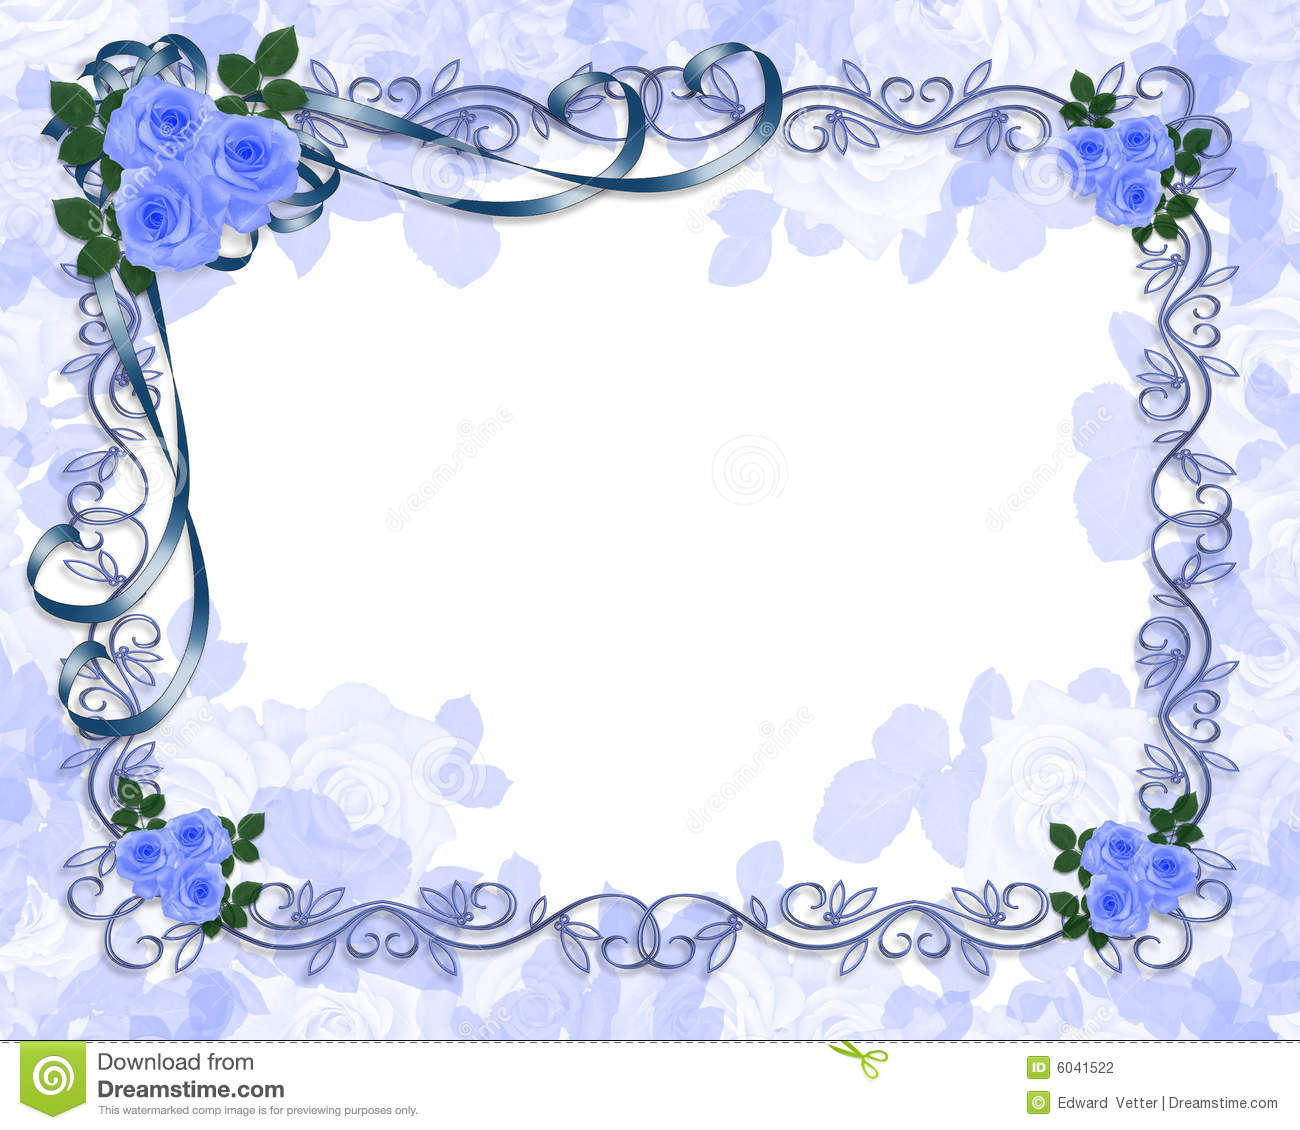 hdq beautiful blue simple - photo #46